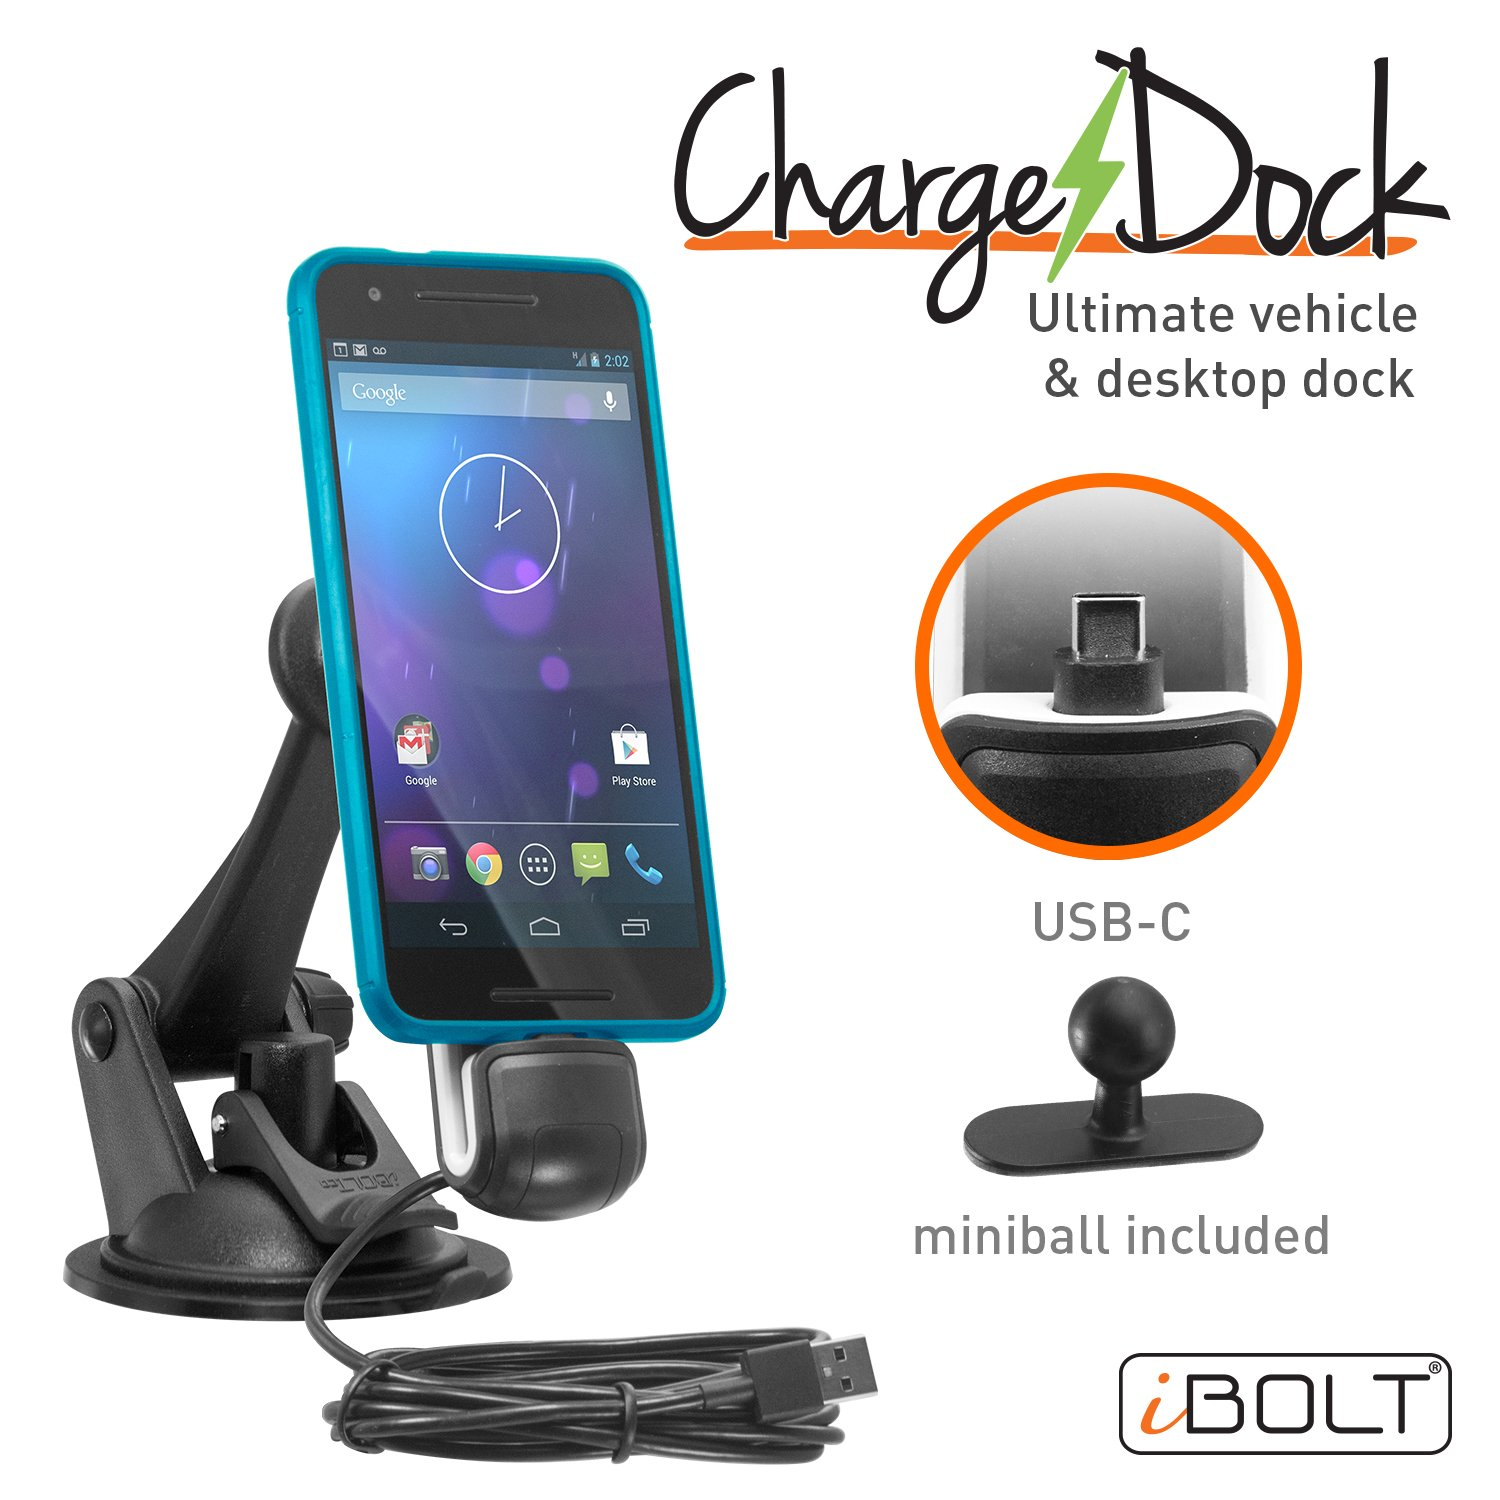 iBolt ChargeDock USB-C Ultimate Magnetic Vehicle and Desktop Dock Mount Holder w/ 2m USB Certified Type C to USB-A Charging Cable. Works With All USB-C Phones - Samsung Note 8 S8 Nexus 6P etc. IBC-34300